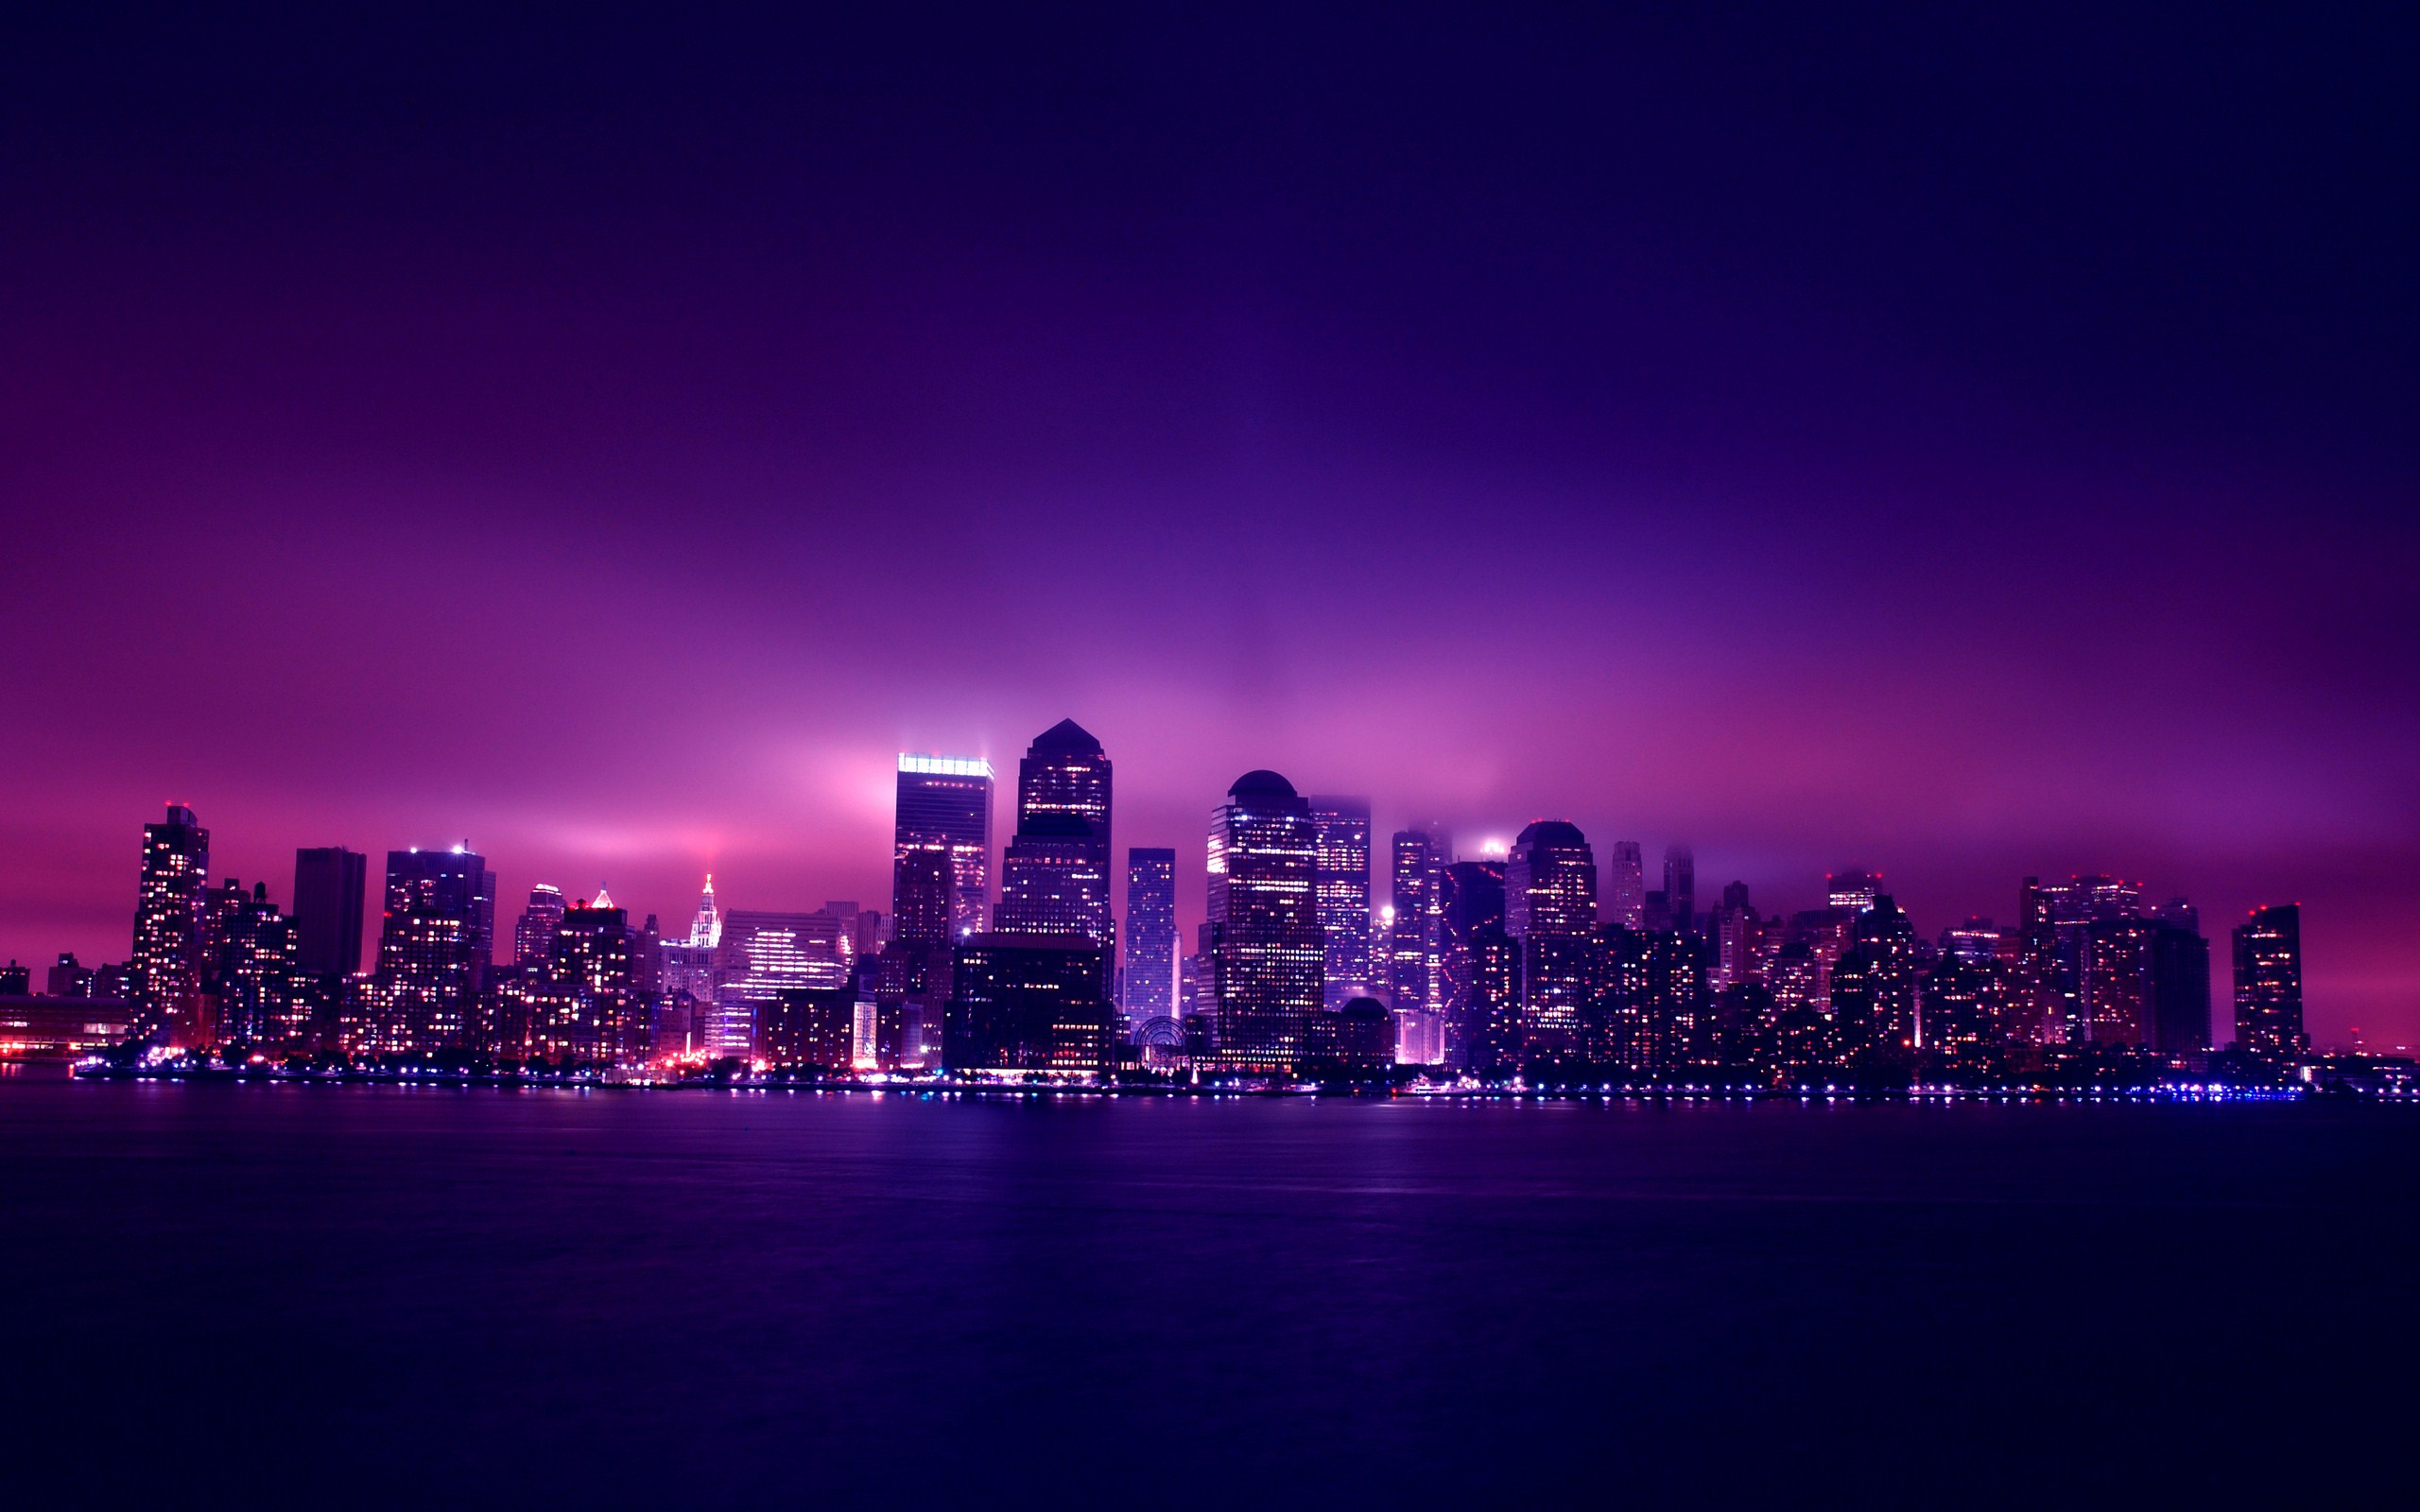 Night City Images Free Download > SubWallpaper